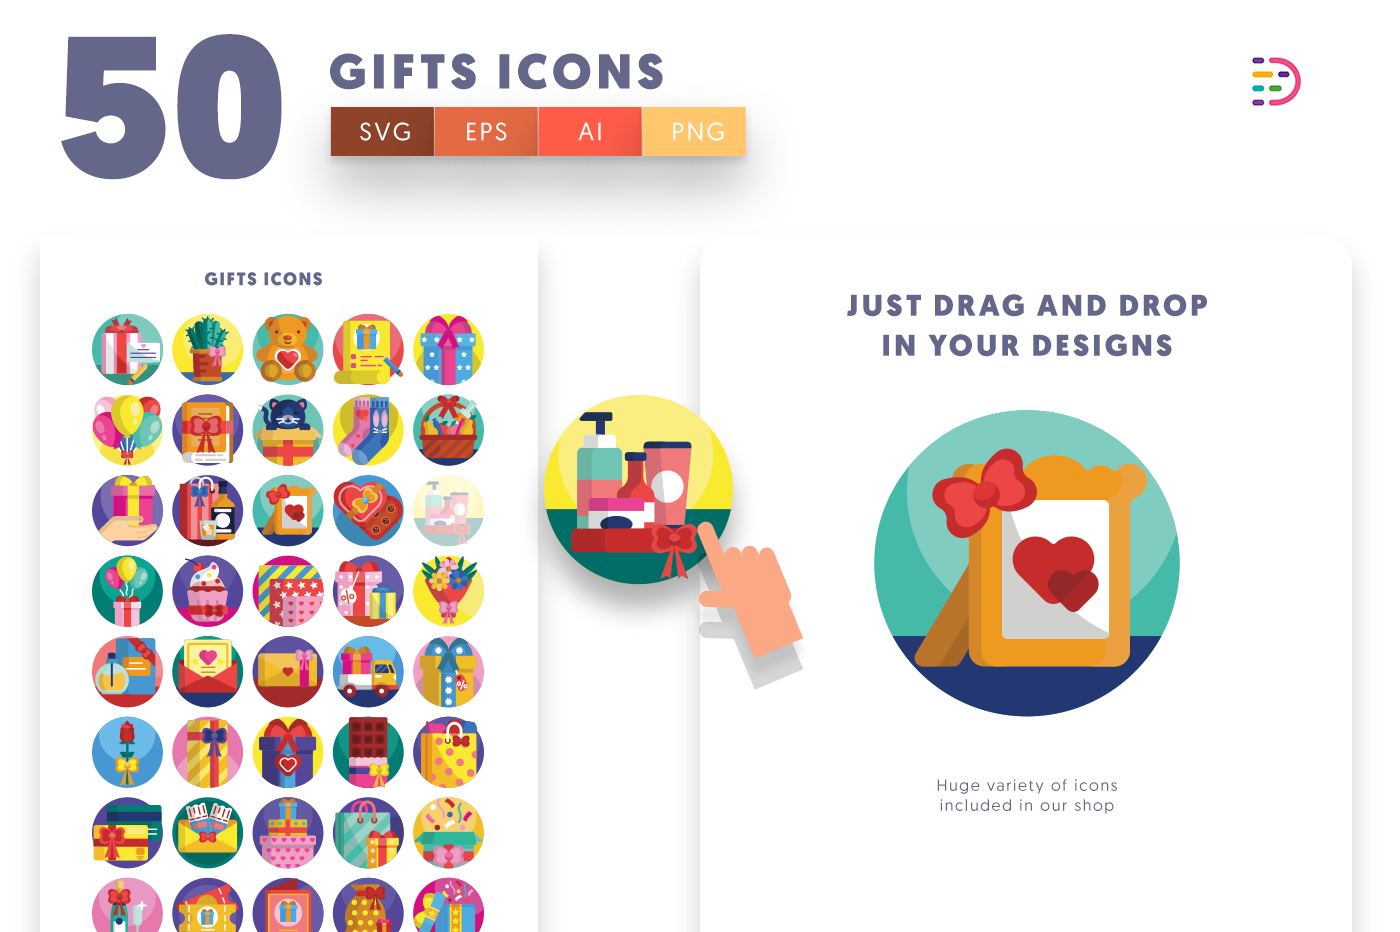 Drag and drop vector 50 Gifts Icons